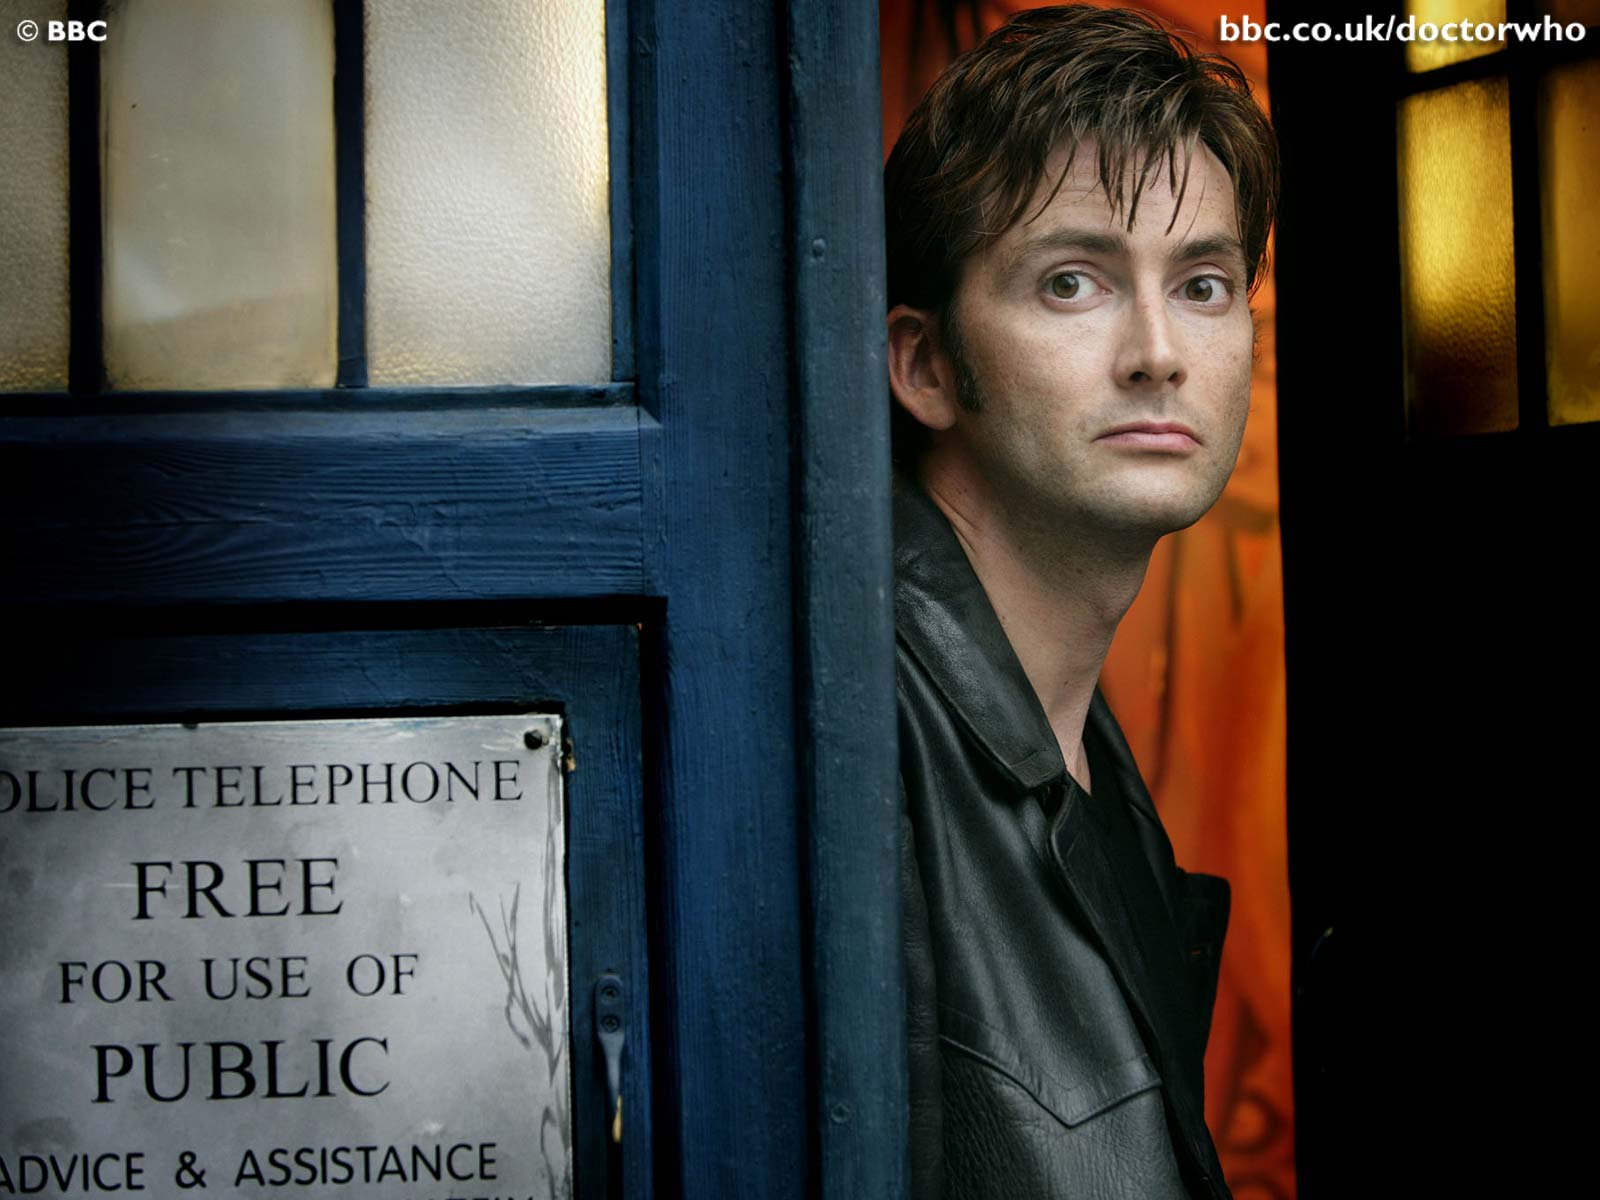 Down The Rabbit Hole: A Companion's Guide: The 10th Doctor